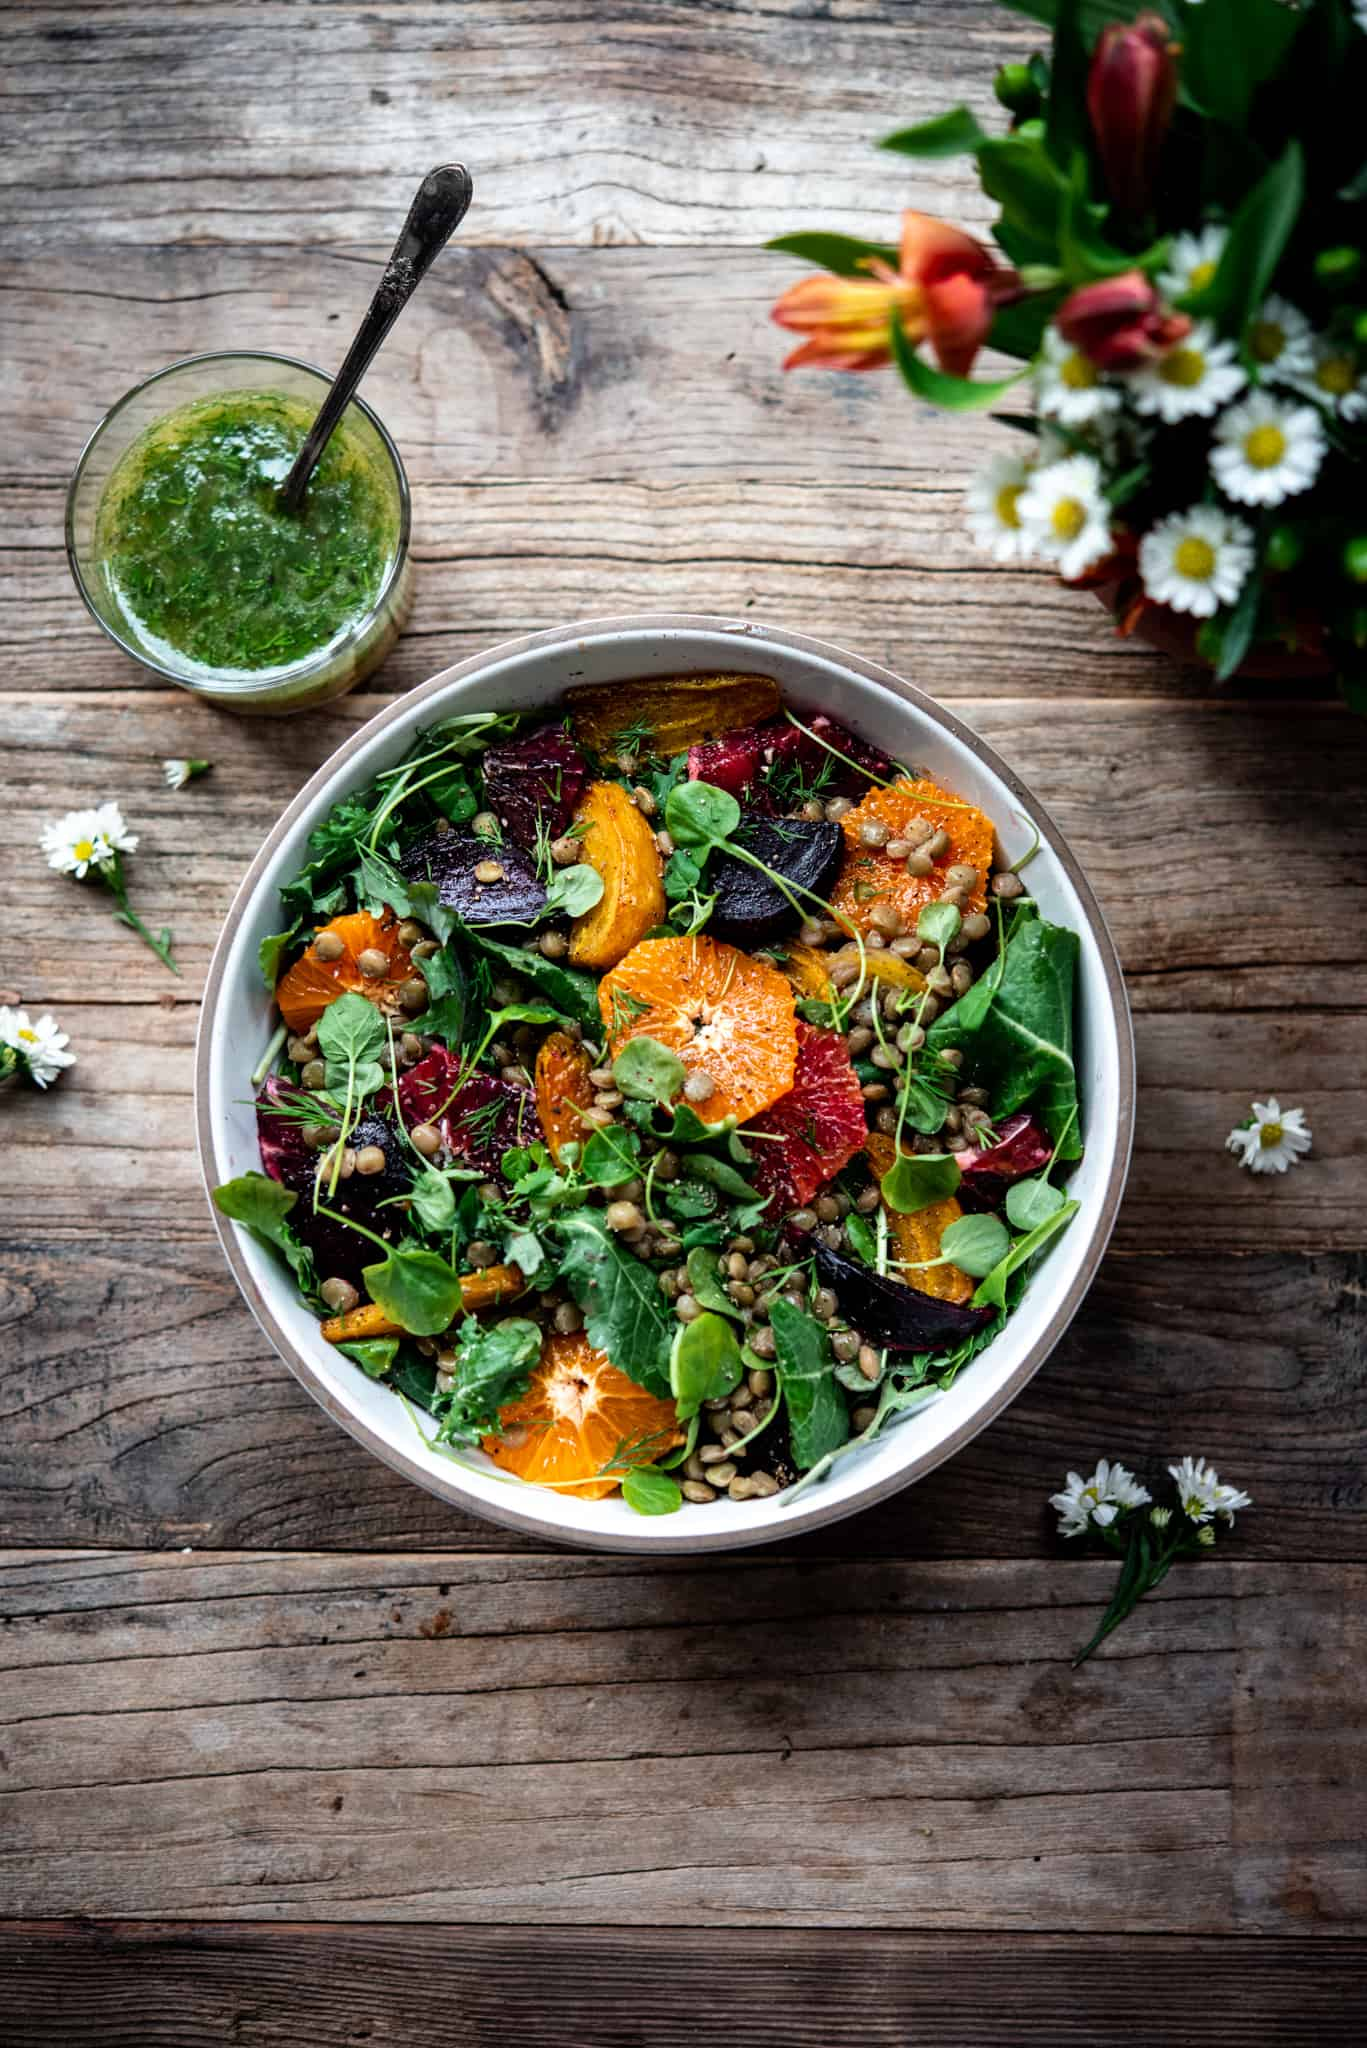 Overhead view of citrus lentil beet salad in a white bowl on a wood table with a vase of flowers